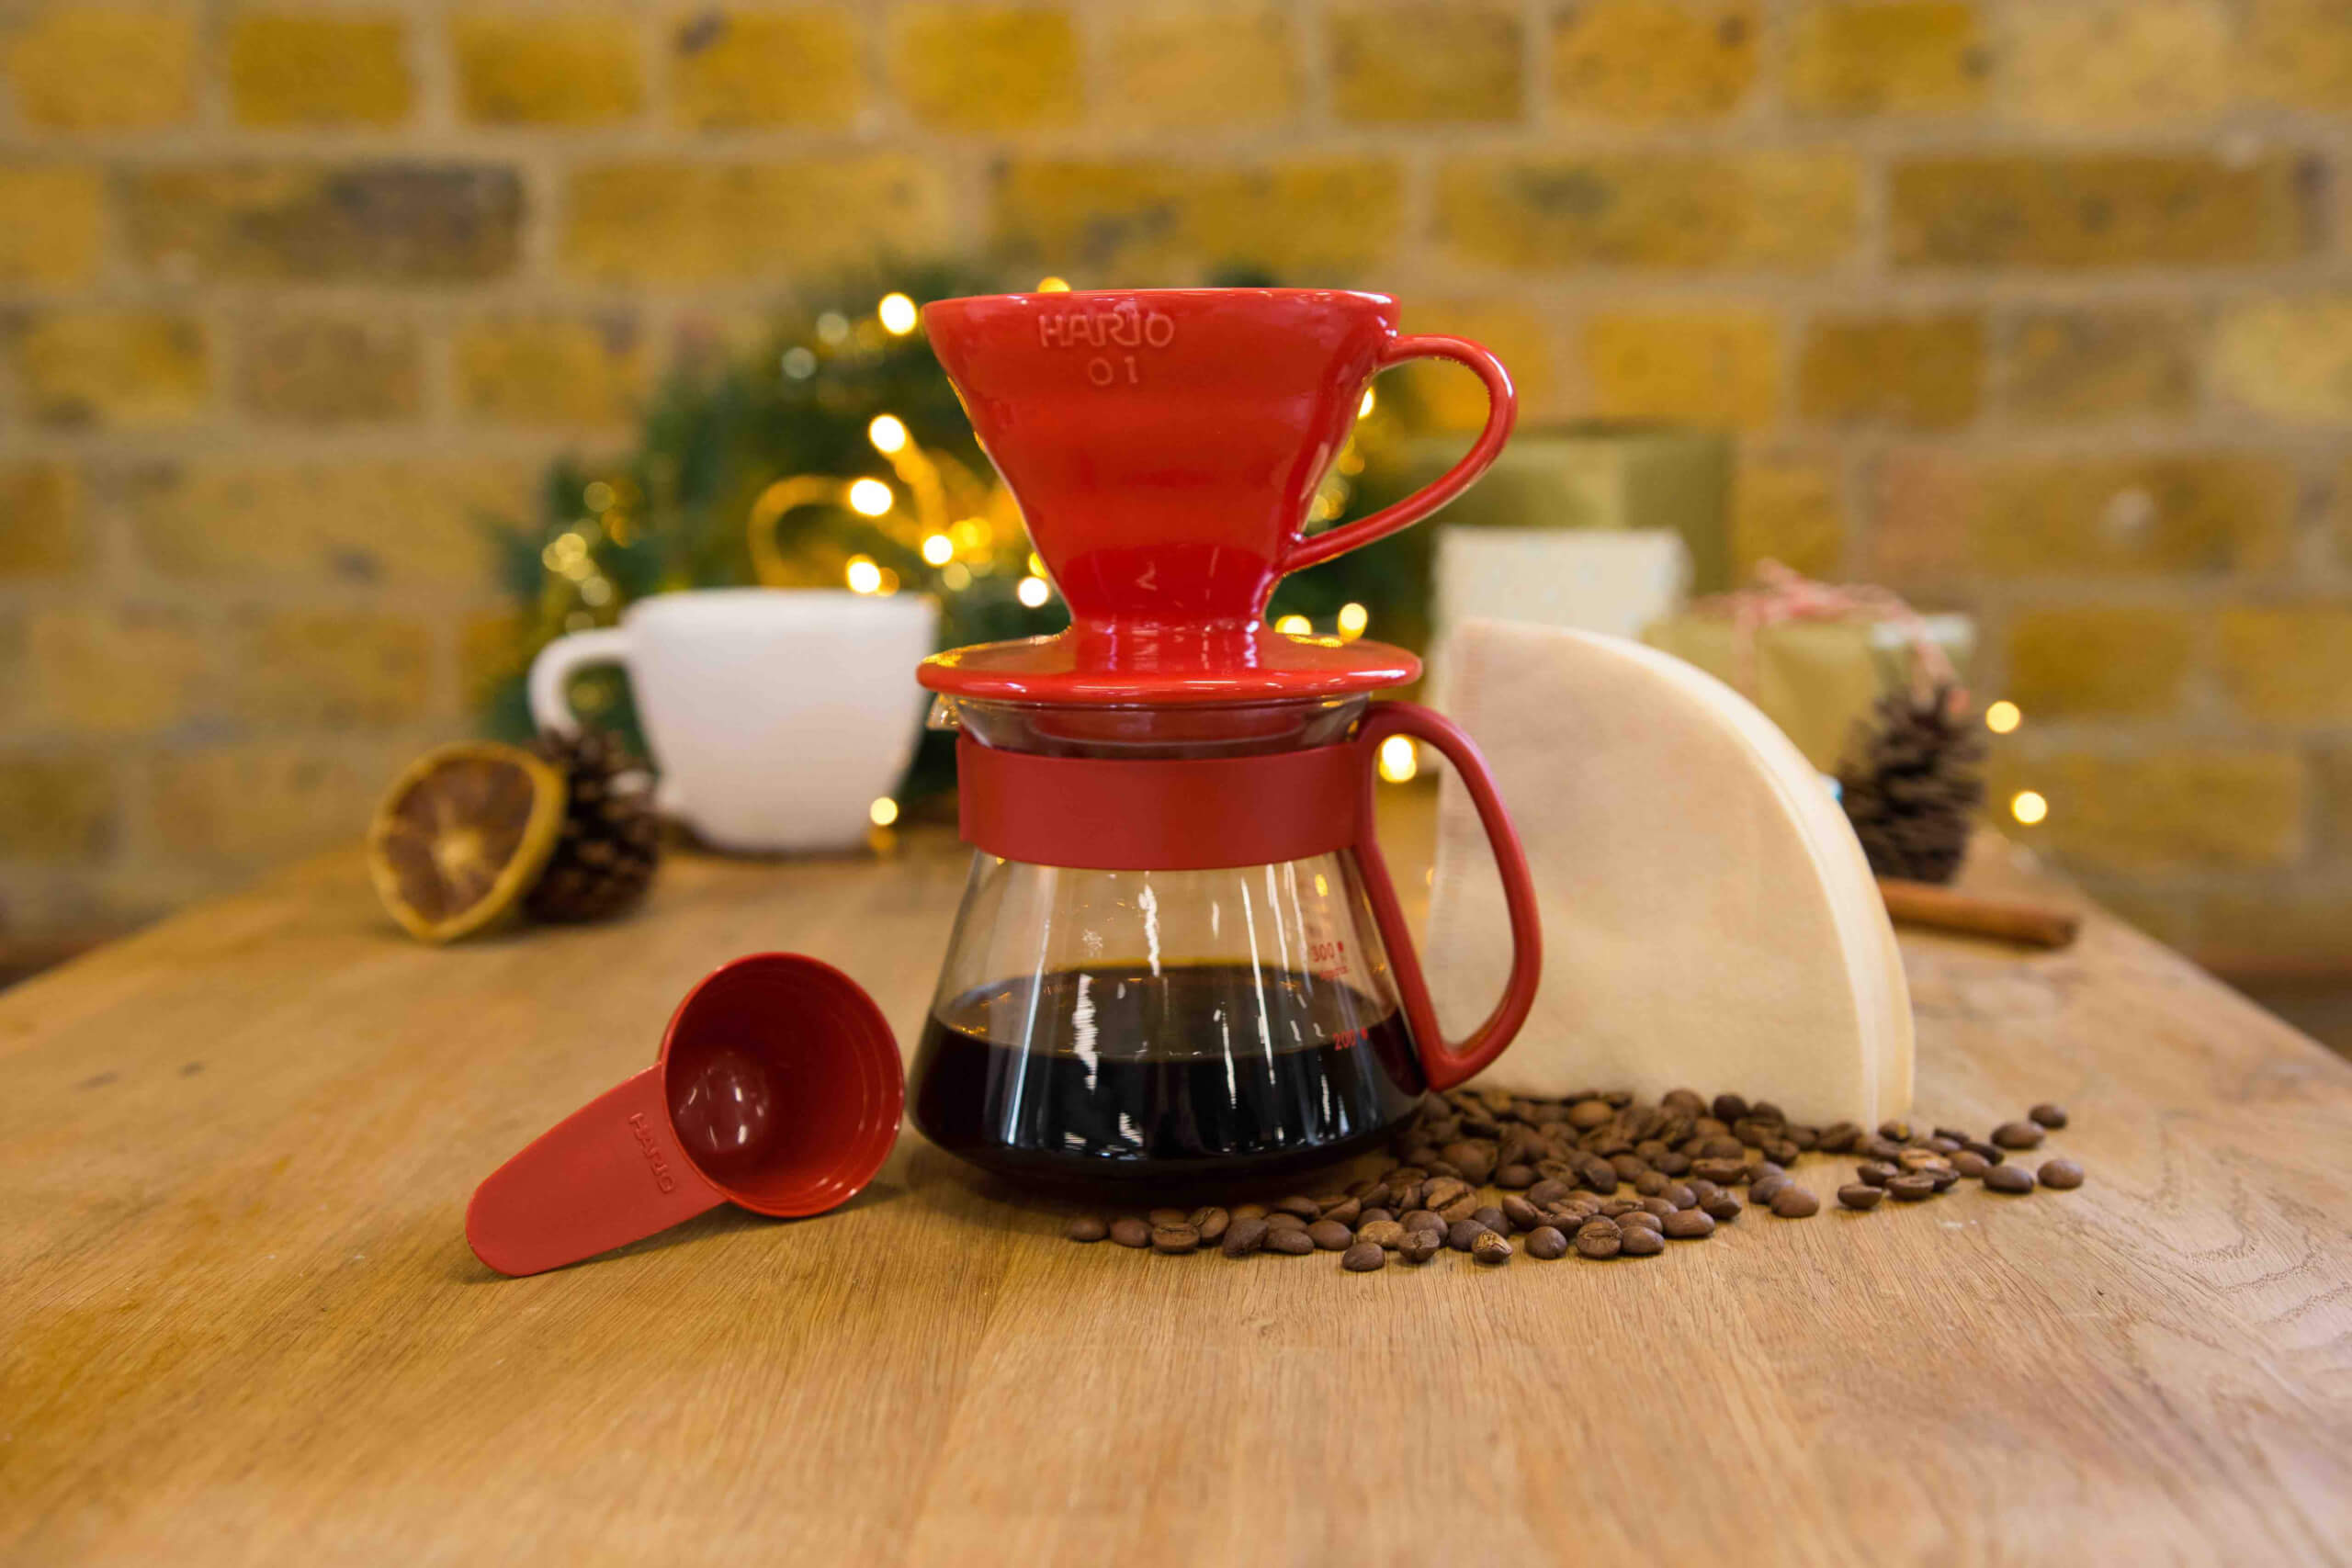 christmas coffee gifts, gifts for coffee lovers, coffee lover gifts, gifts for the coffee lover, best gifts for coffee lovers, gifts for a coffee lover, coffee lovers gift set, gifts coffee lovers, coffee gifts for coffee lovers, great gifts for coffee lovers, good gifts for coffee lovers, cool gifts for coffee lovers, unique gifts for coffee lovers, cheap gifts for coffee lovers, best gift for a coffee lover, perfect gift for coffee lovers, gifts for coffee lovers uk, gifts for starbucks lovers, gifts for coffe lovers, coffee lover gifts uk